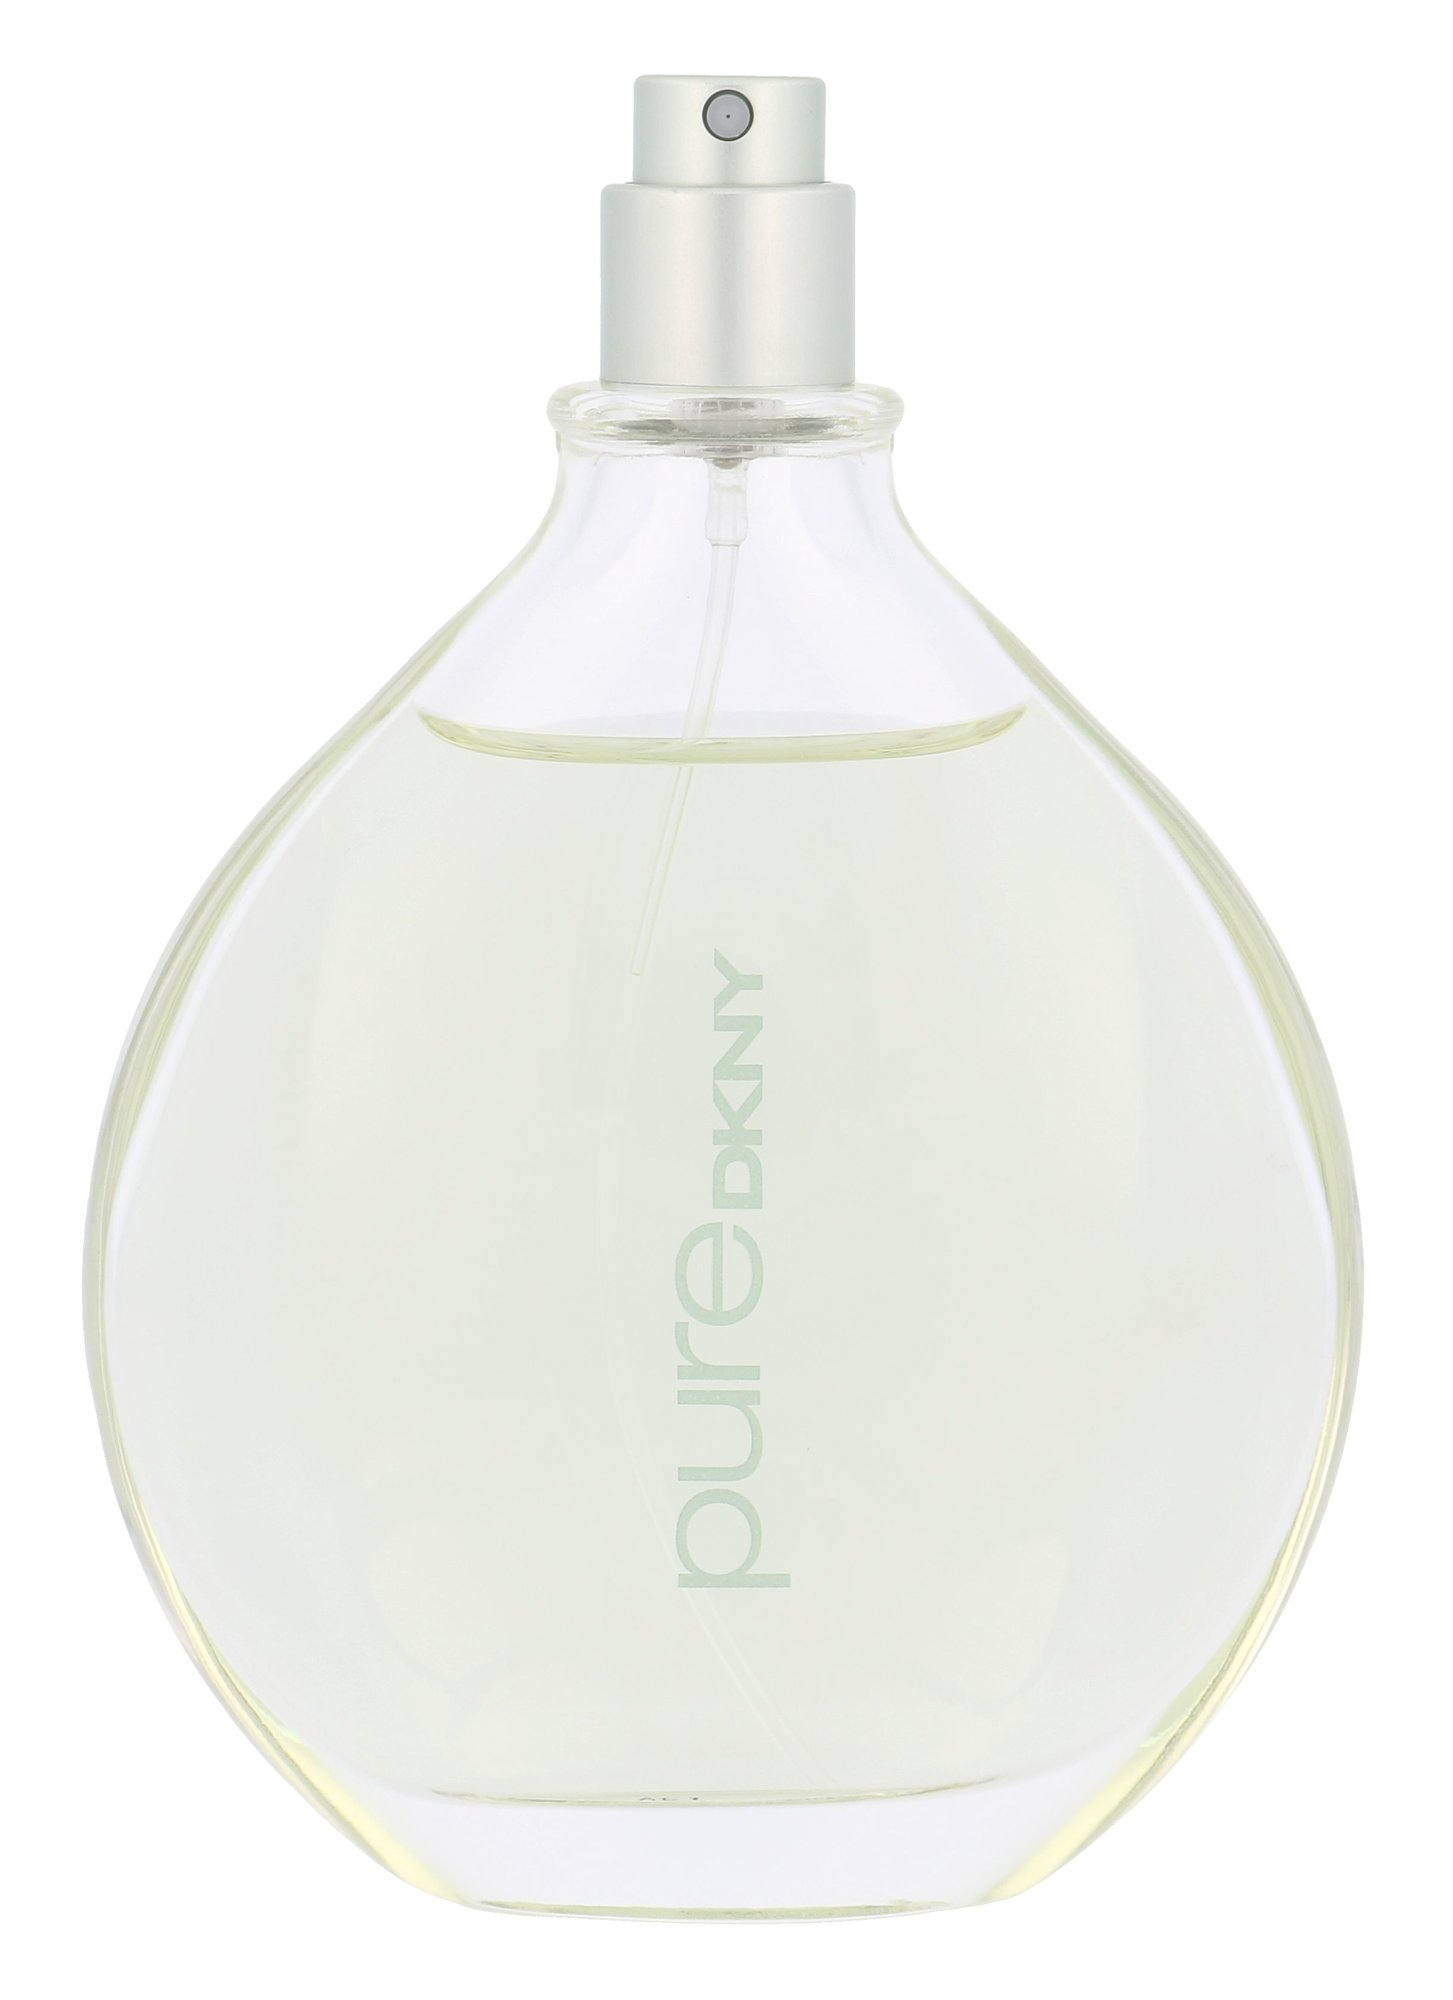 DKNY Pure Verbena EDP 100ml